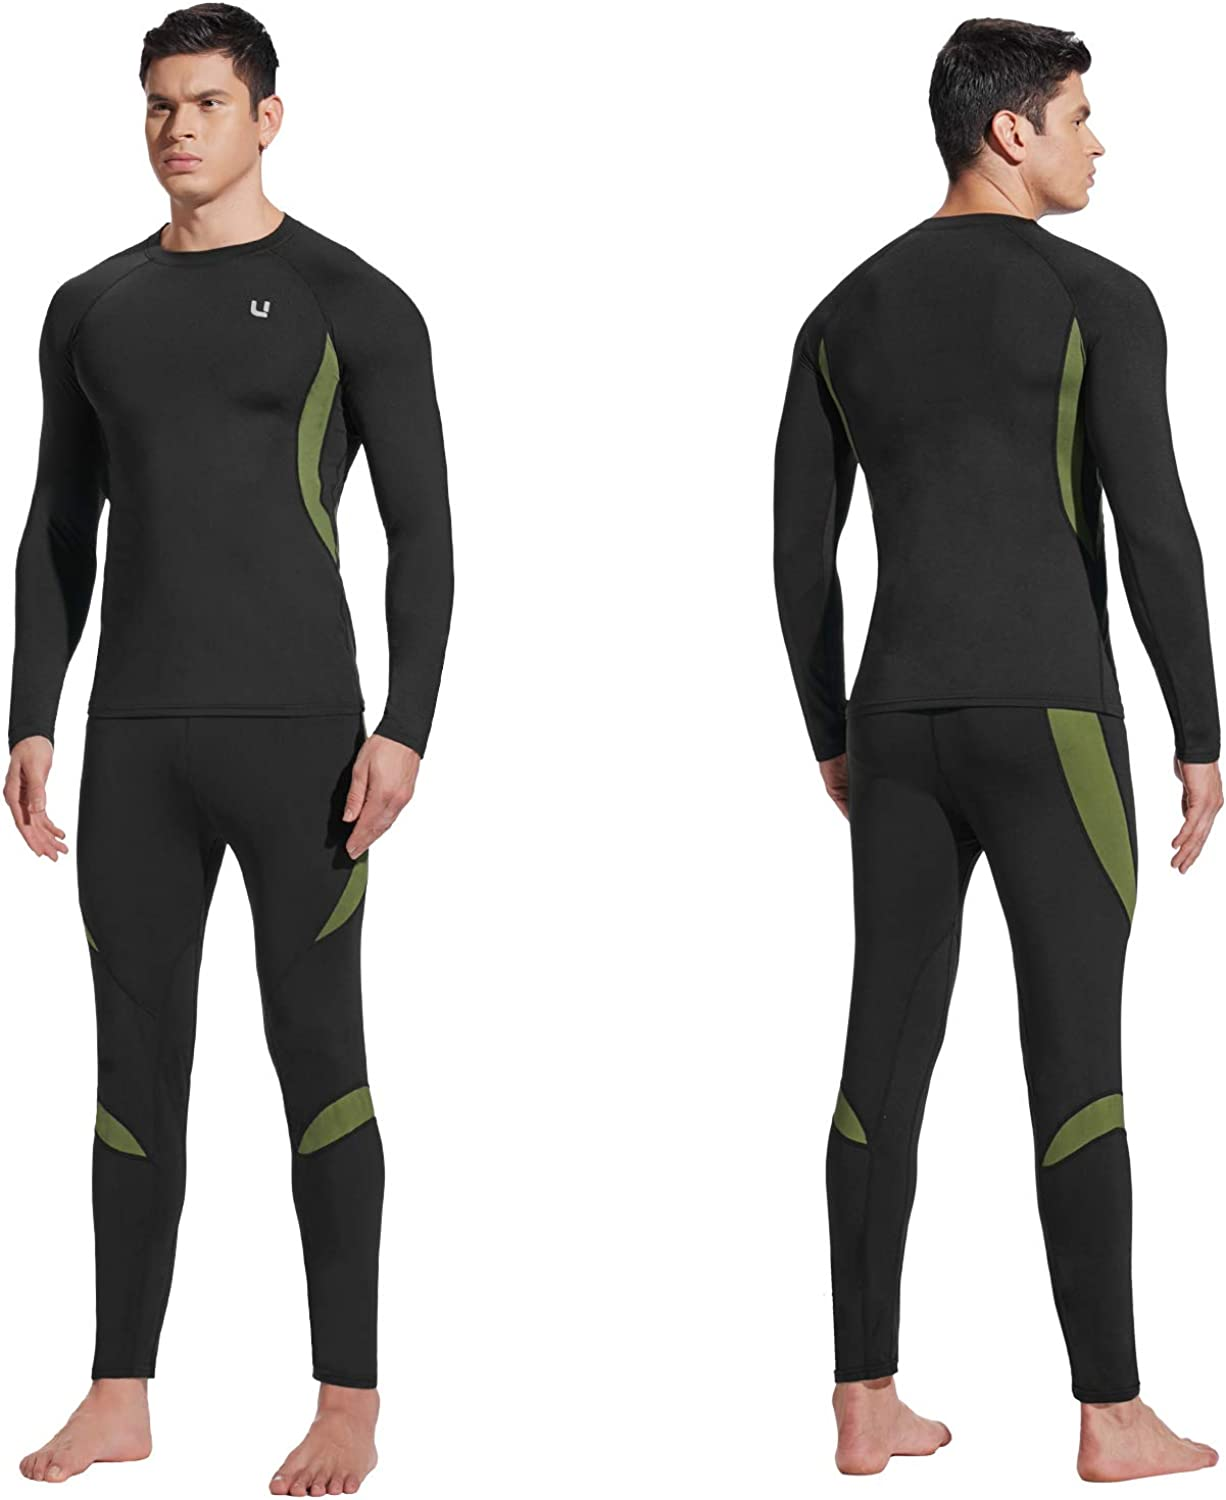 UNIQUEBELLA Men's Thermal Underwear Sets Top & Long Johns Fleece Sweat Quick Drying Thermo Base Layer